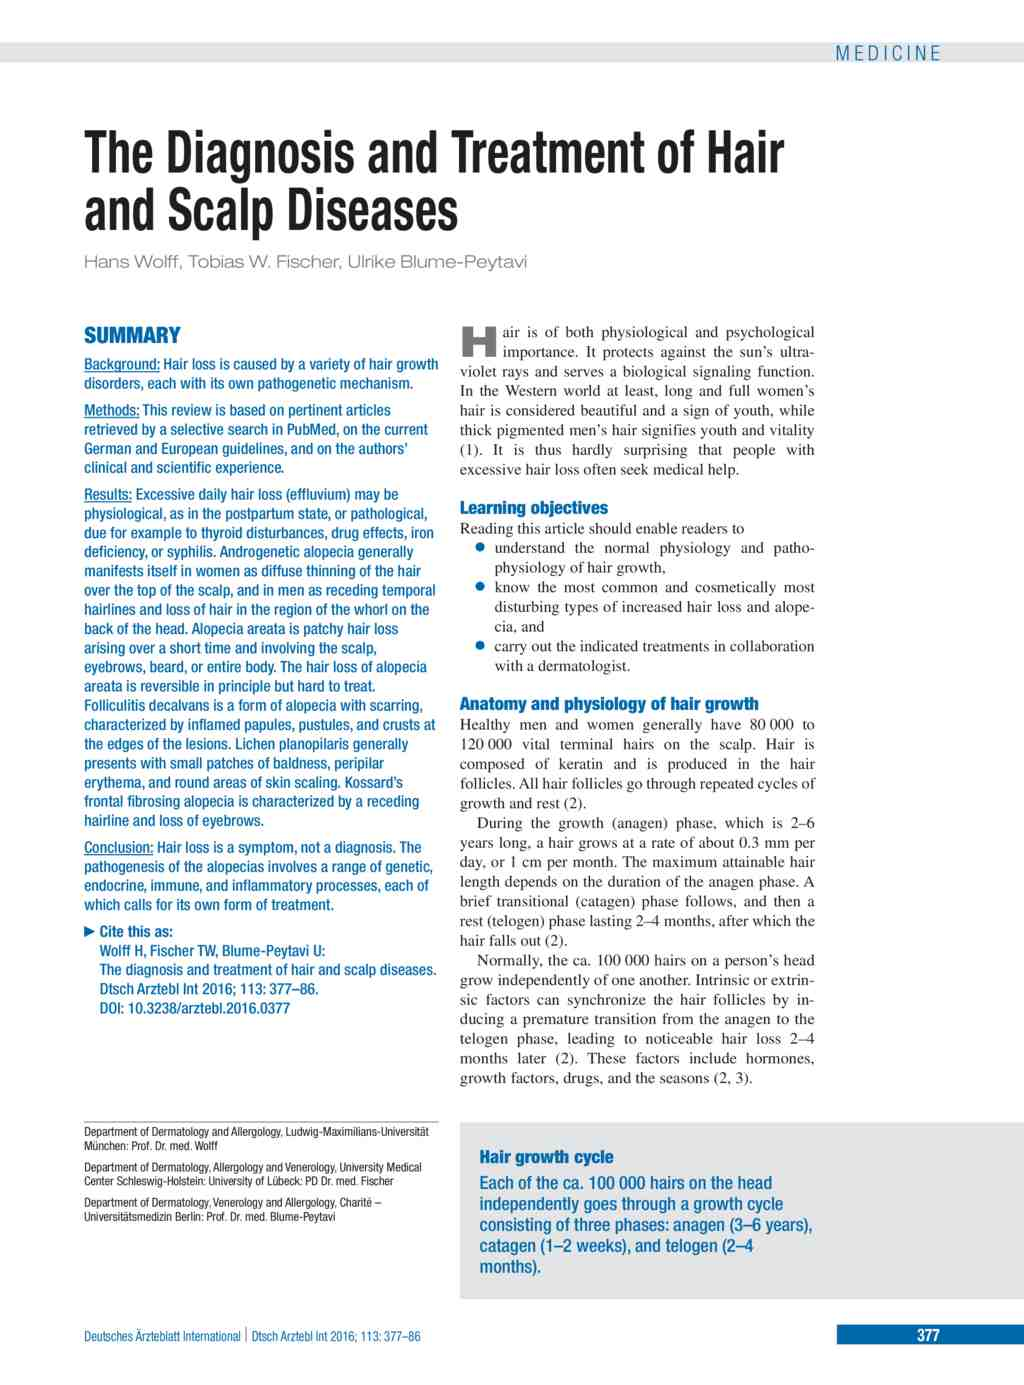 The Diagnosis and Treatment of Hair and Scalp Diseases (27.05.2016)